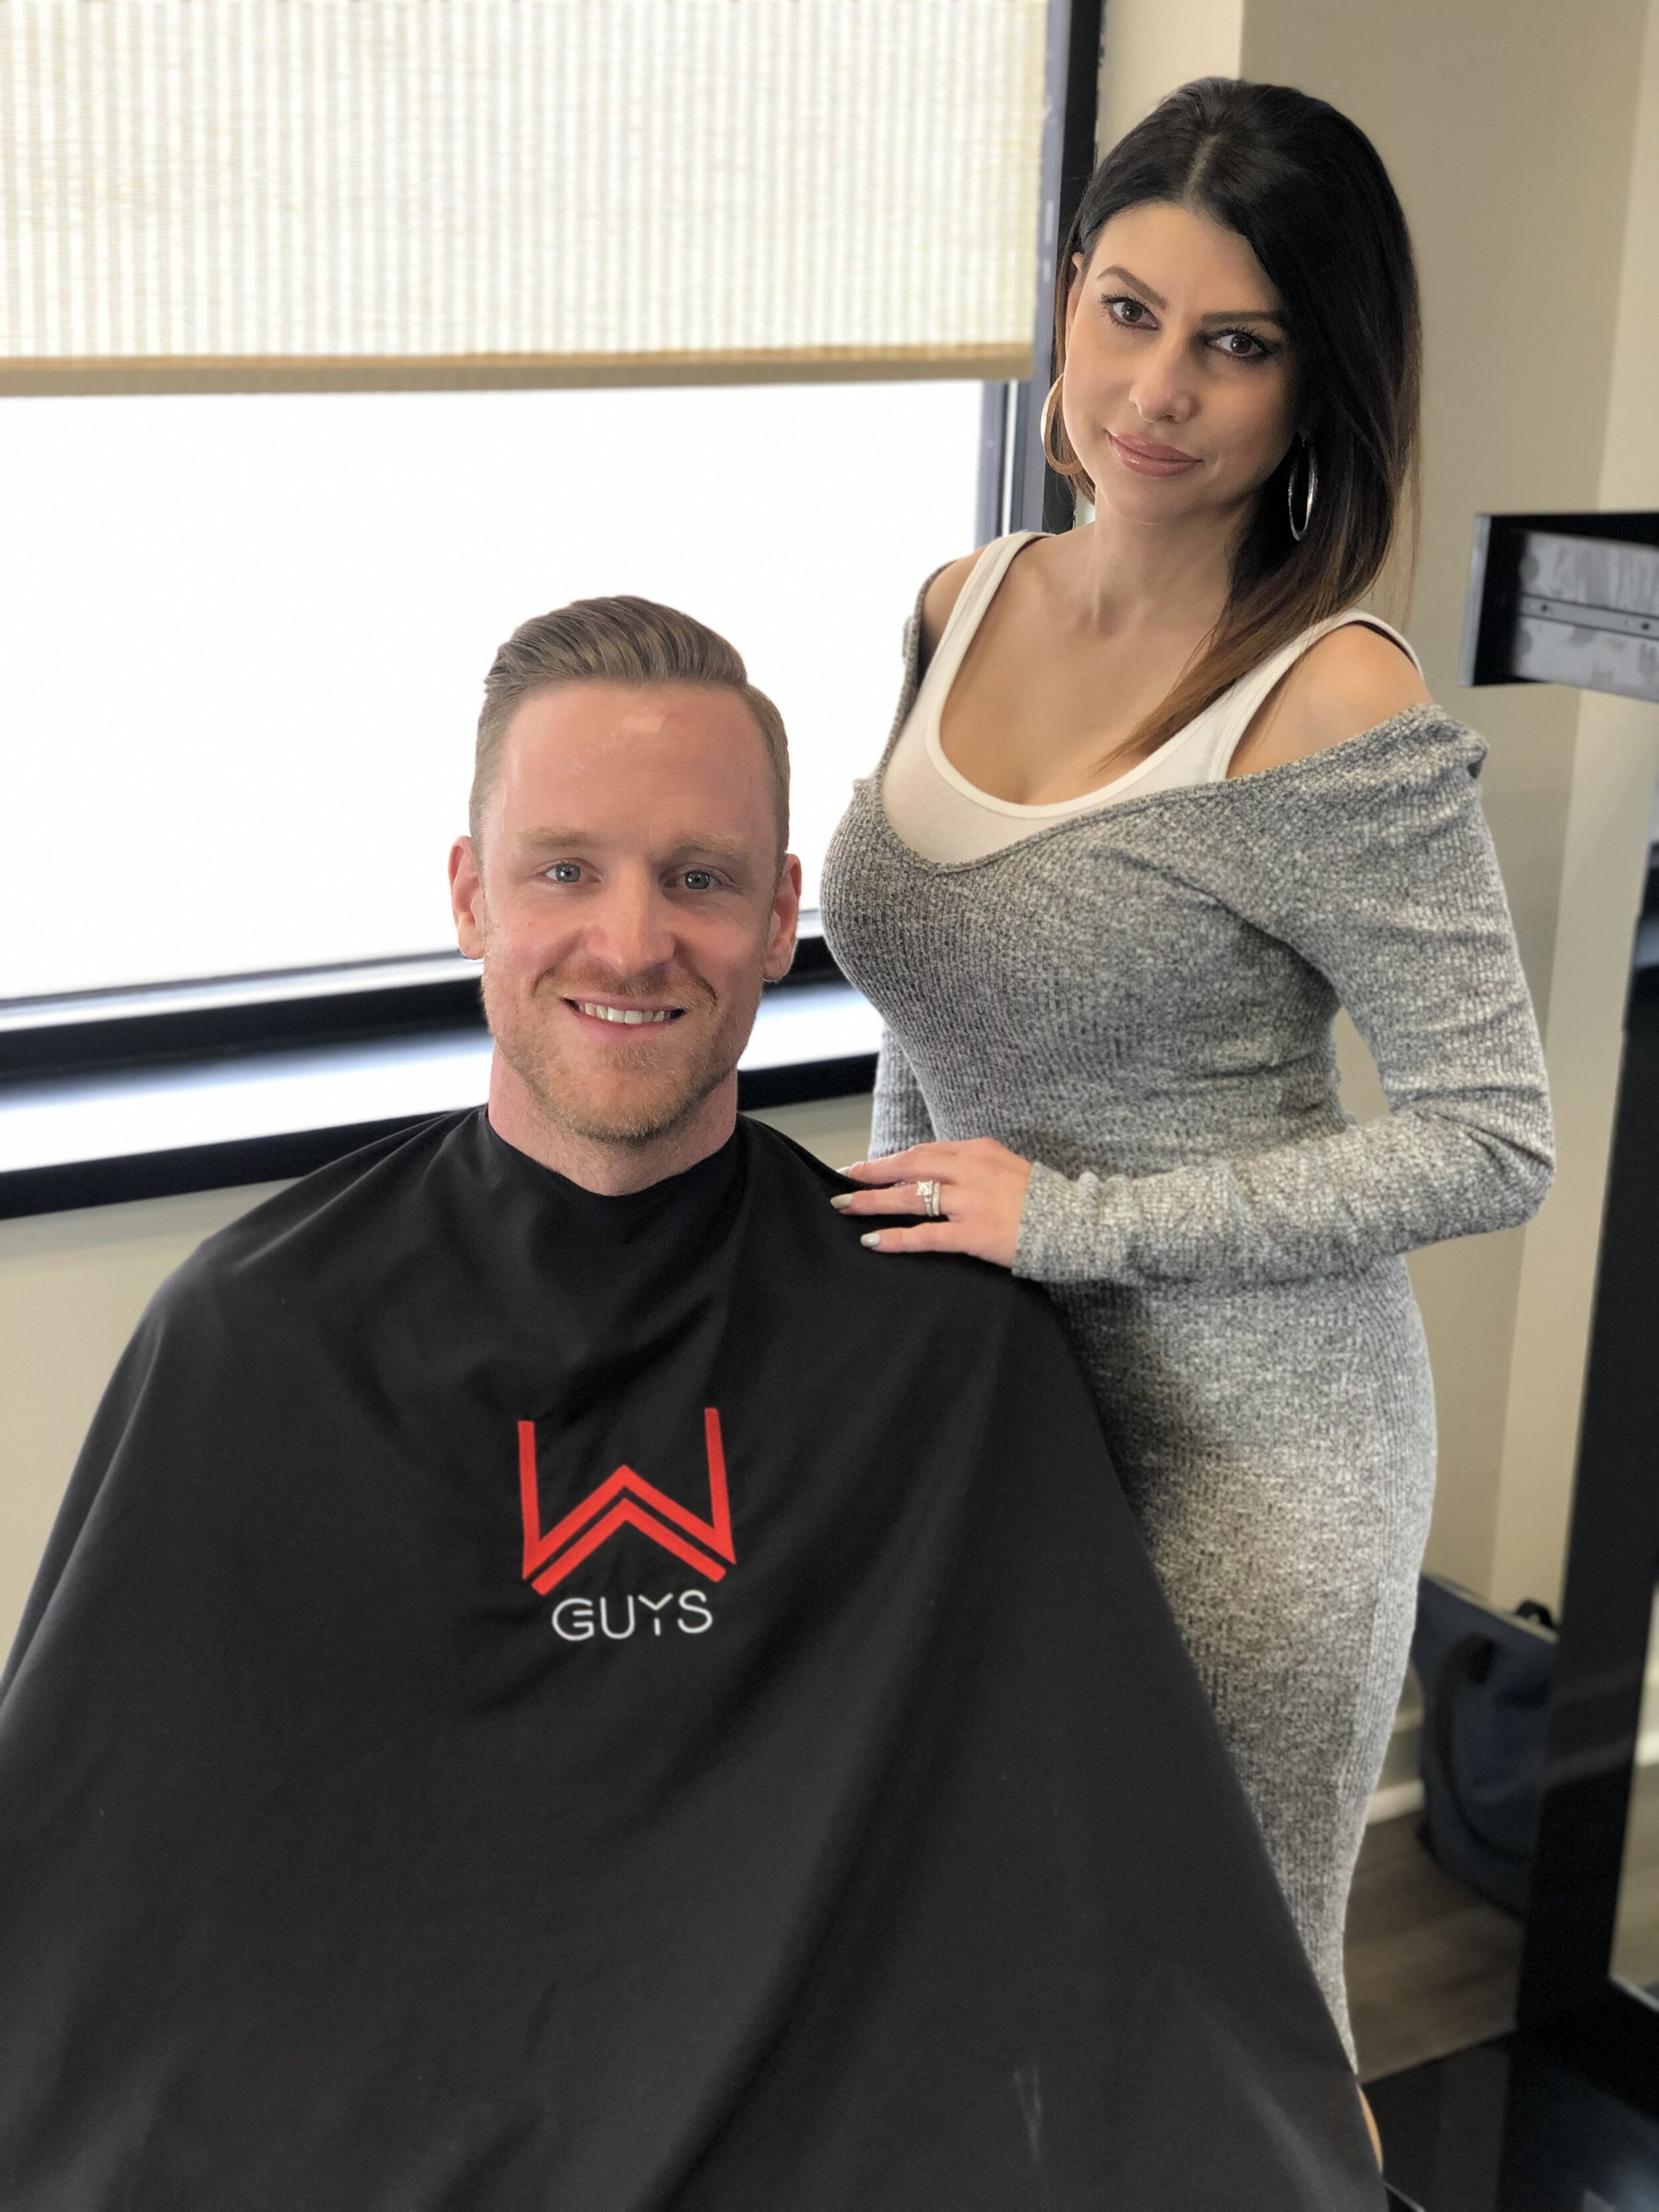 Salons Hiring Near Me : salons, hiring, Men's, Modern, Barber, Salon, Expert's, Barbering, Cutting., Trained, Barbering,, Straight, Razor, Shave's,, Haircuts, Hairstyle, Color, Upscale